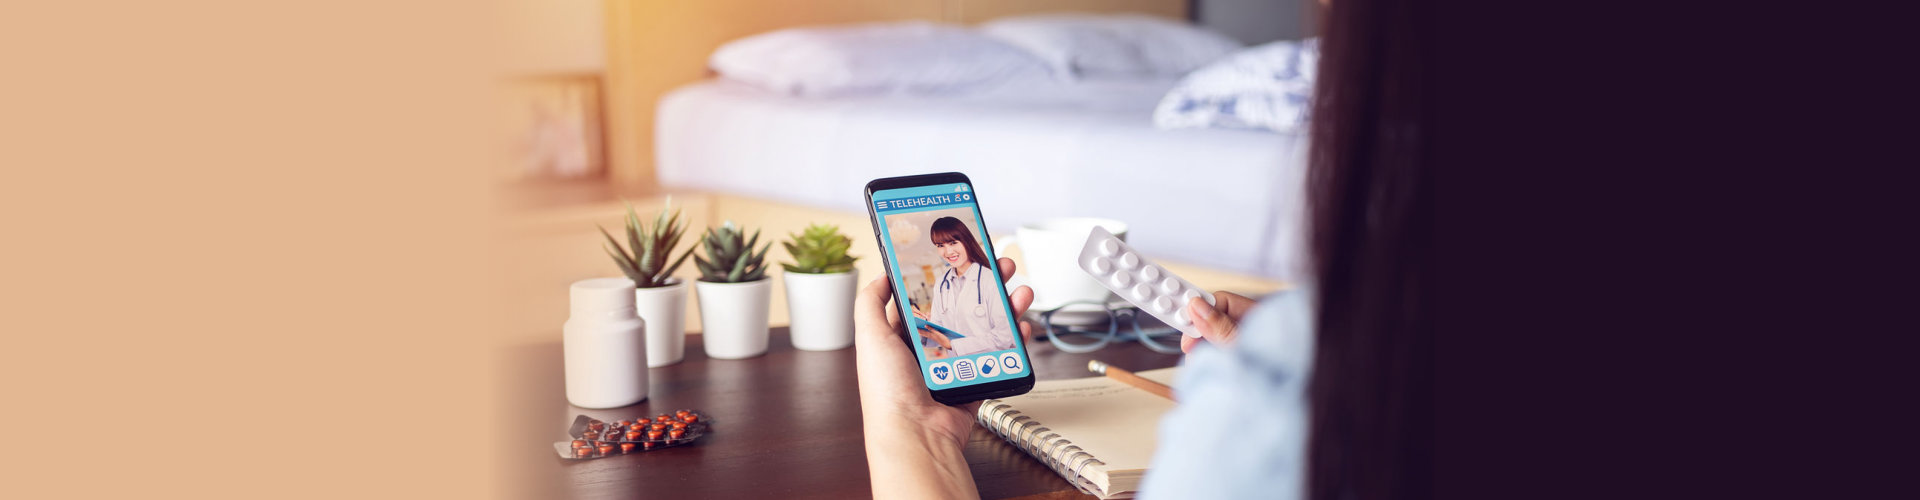 sick woman use video conference, make online consultation with doctor on mobile application, patient ask doctor about illness, medication via video call. Telehealth, Telemedicine and online hospital